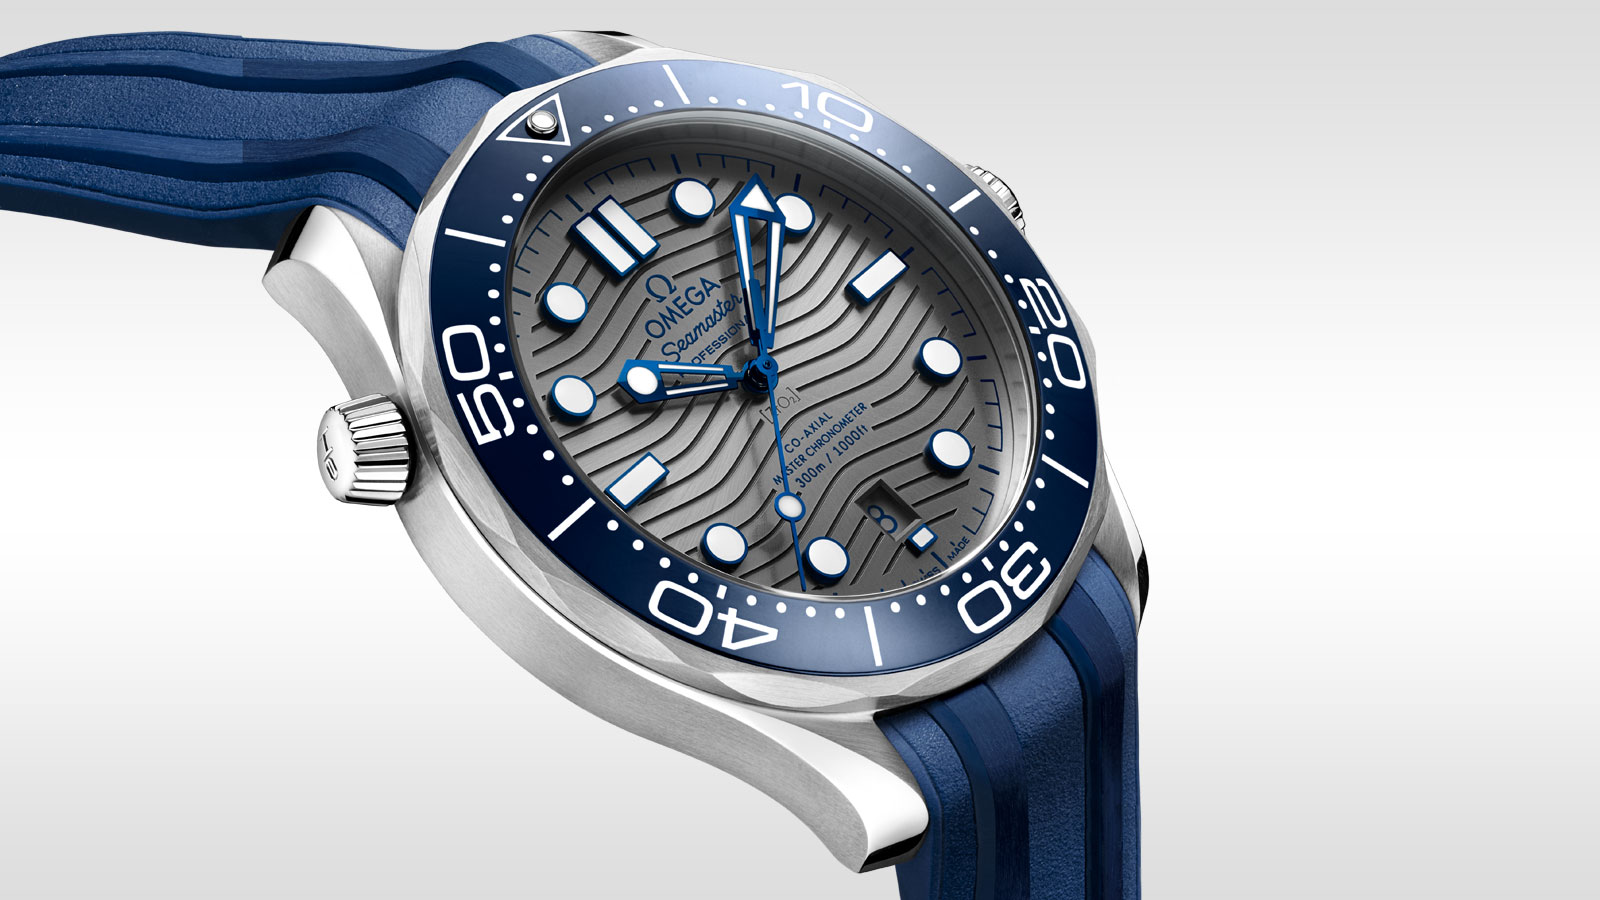 Seamaster Diver 300 M Diver 300M Omega Co‑Axial Master Chronometer 42 mm - 210.32.42.20.06.001 - Afficher 2